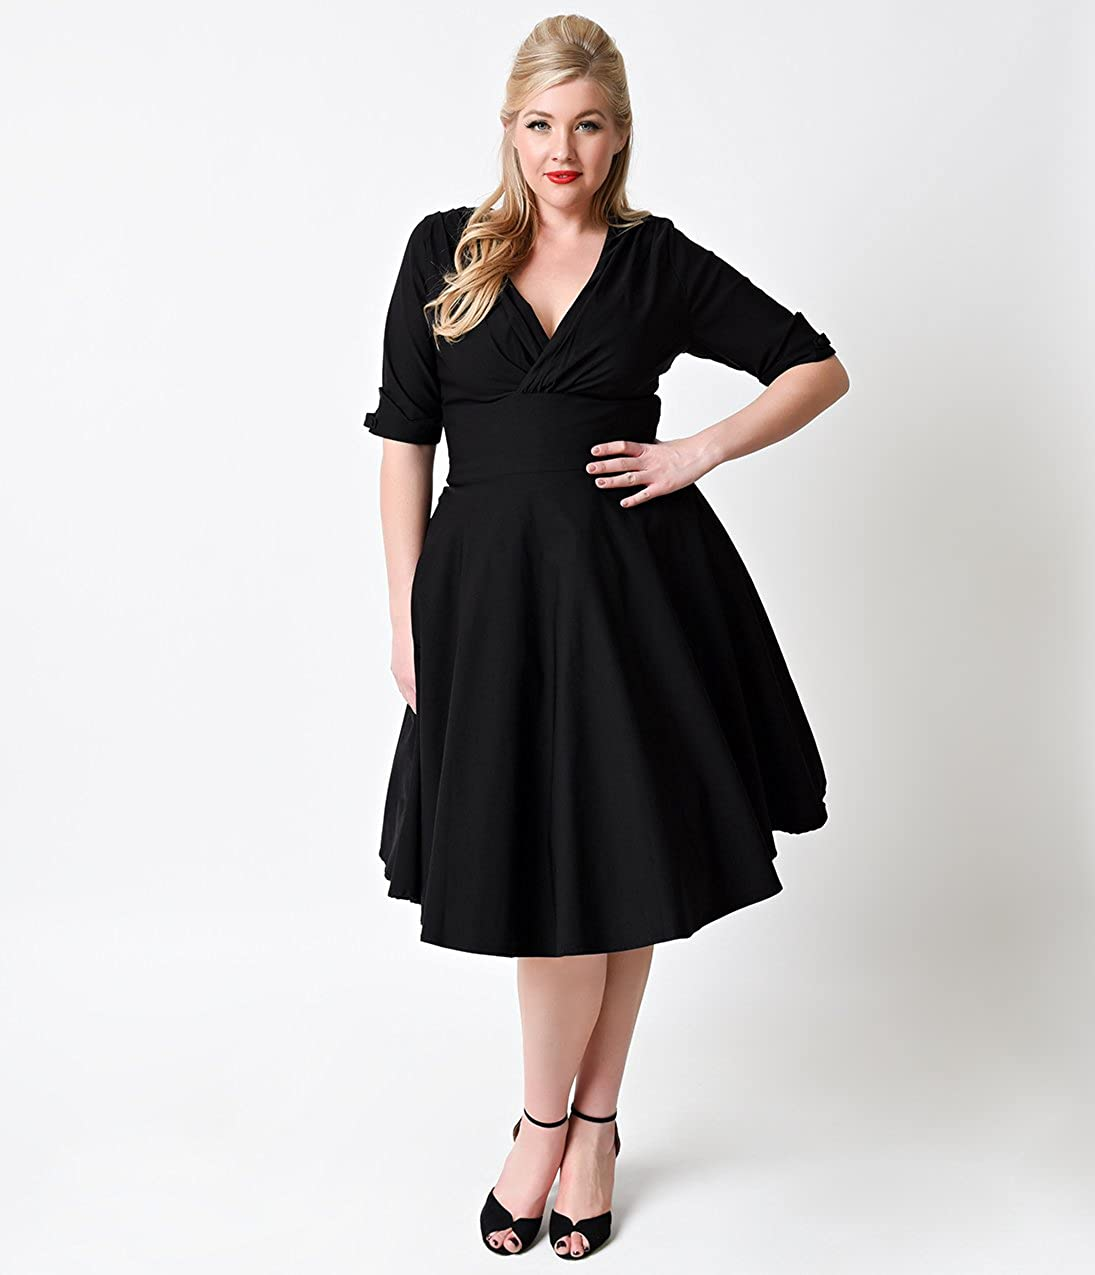 8c85a3eead5c ... Unique Vintage Plus Size 1950s Black Delores Swing Dress with Sleeves  96462 ...